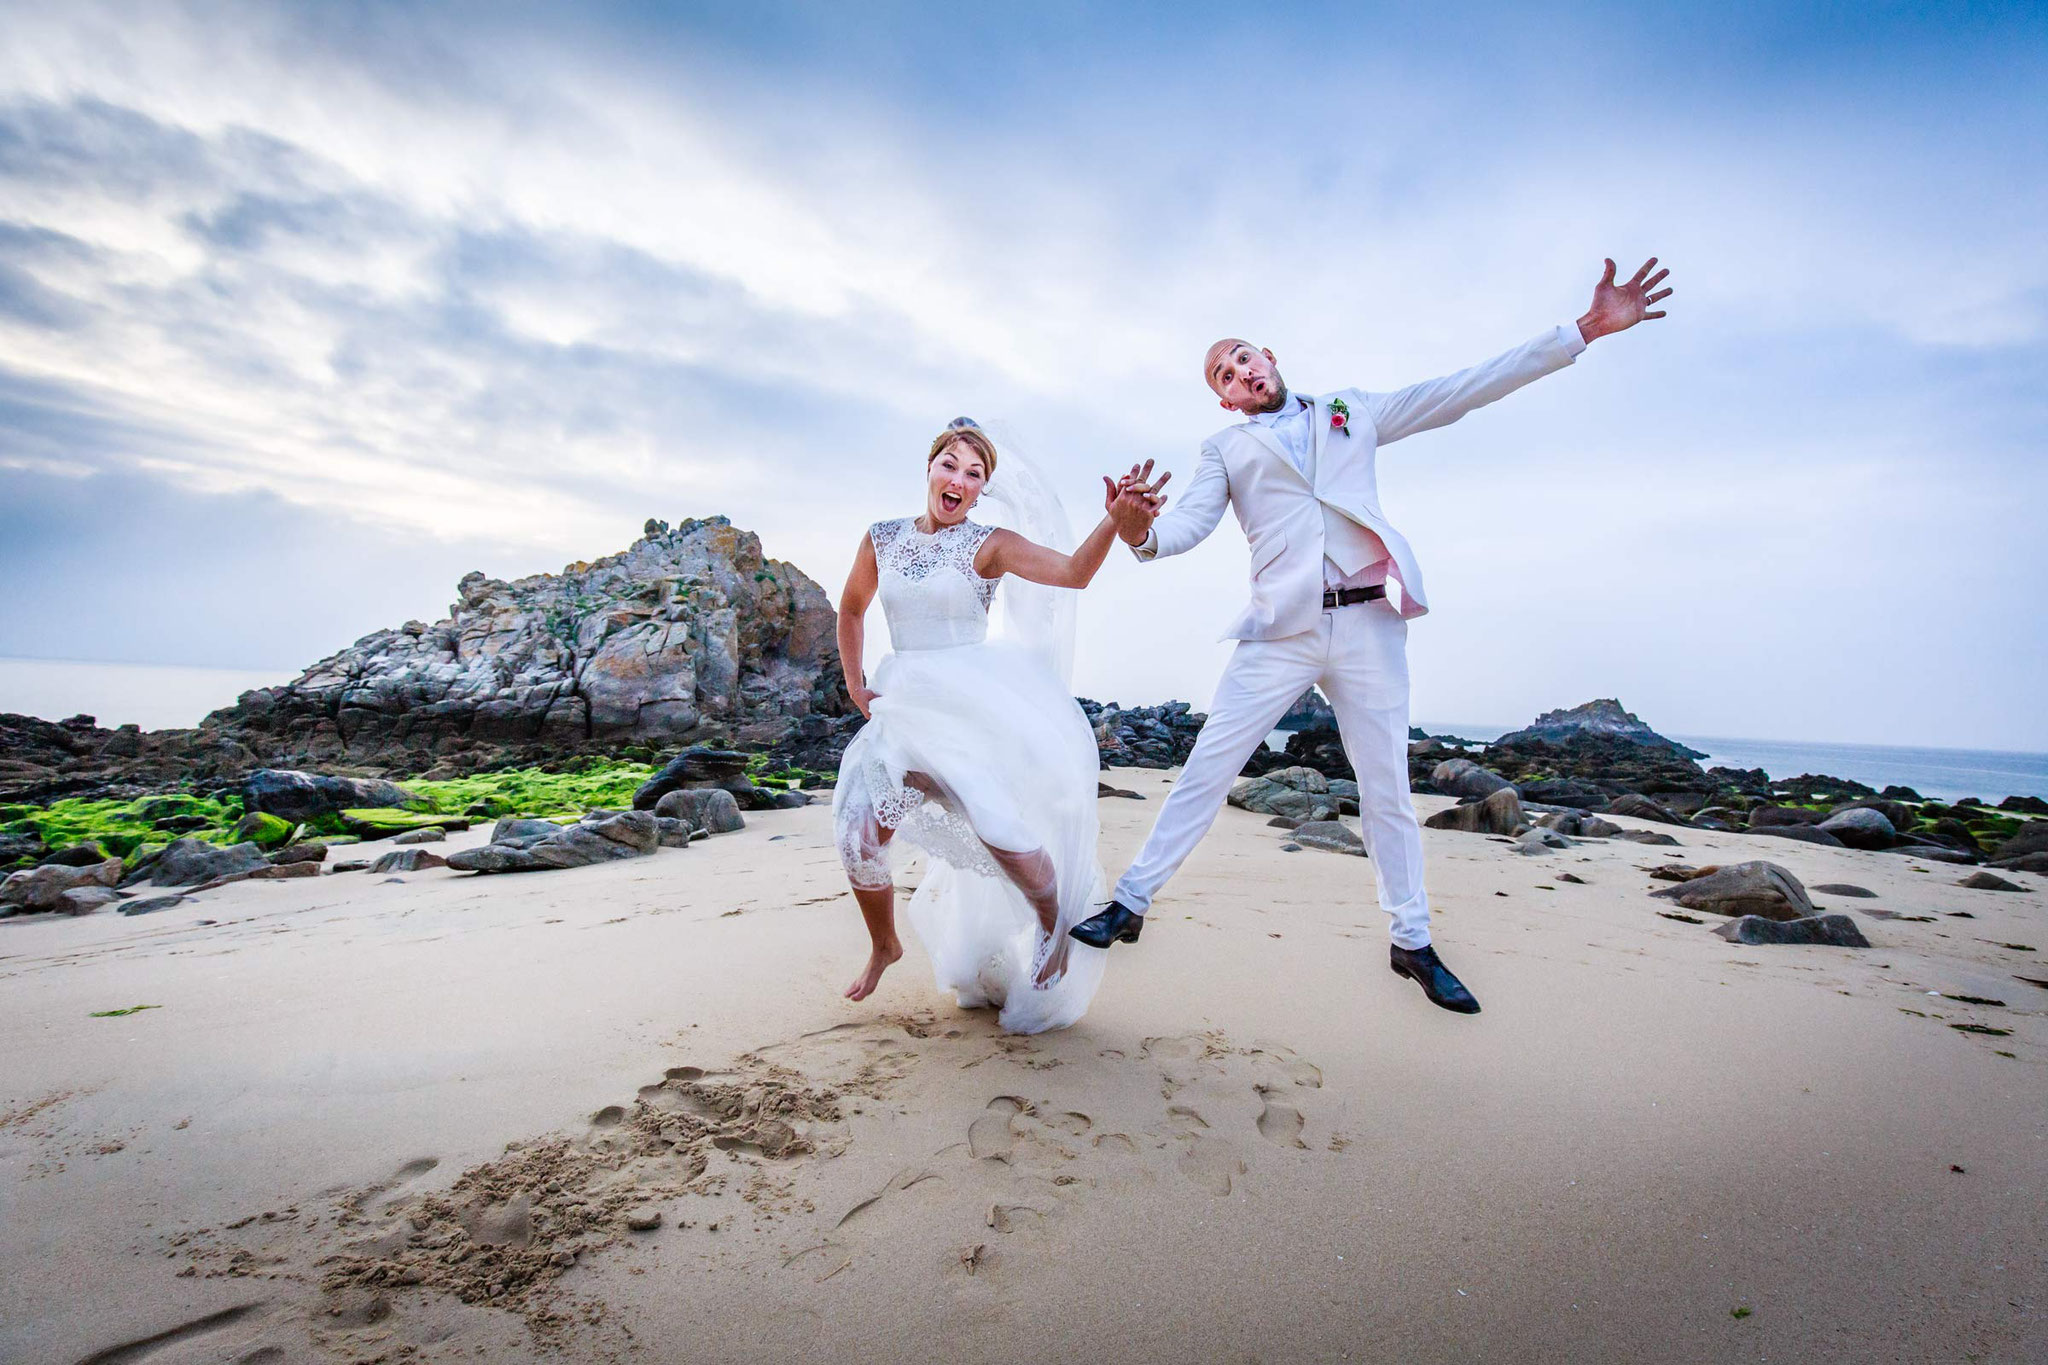 Bride and groom photo sur la plage au coucher du soleil